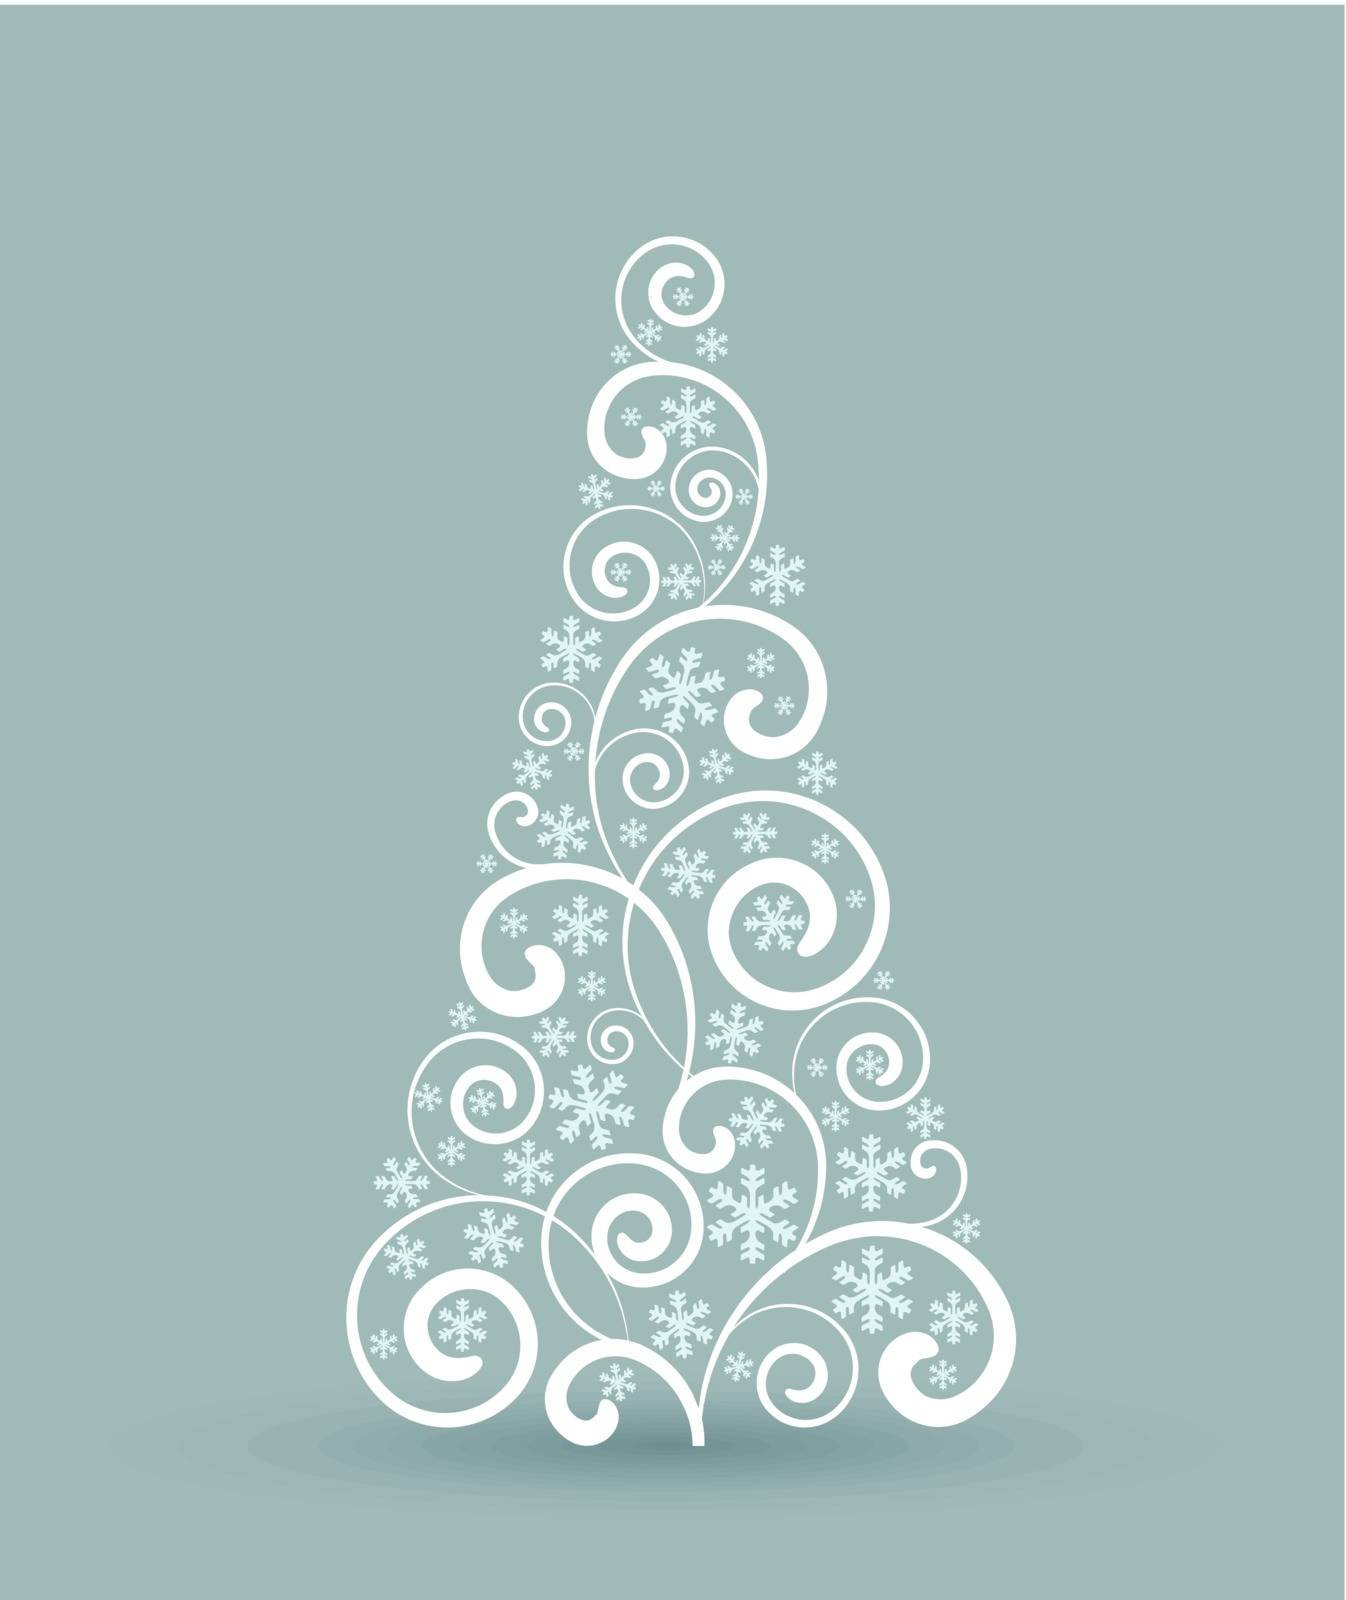 Decorating a Christmas tree with ornaments, Christmas card